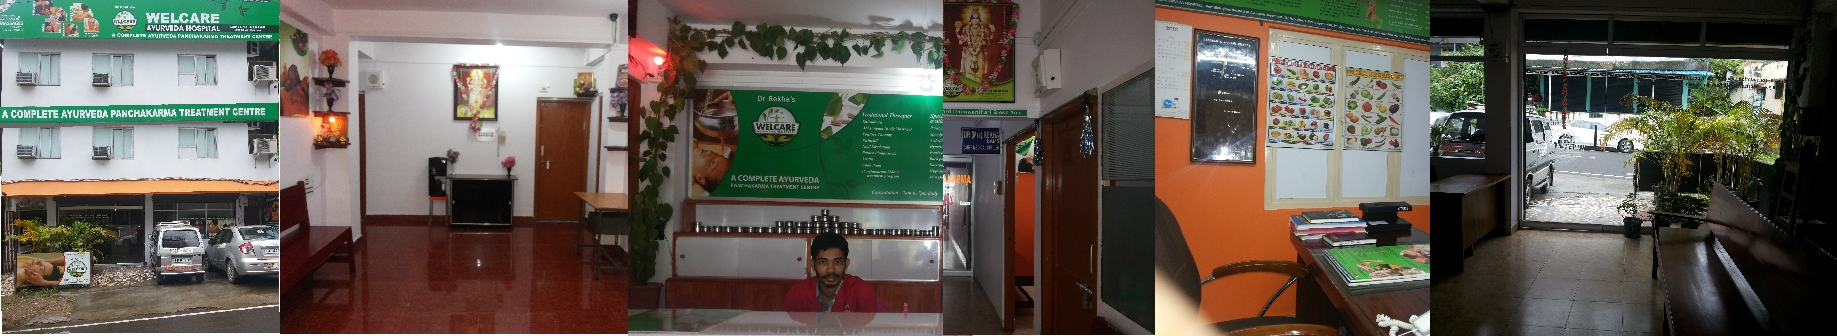 Welcare_Ayurveda_Hospital_Facilities.jpg